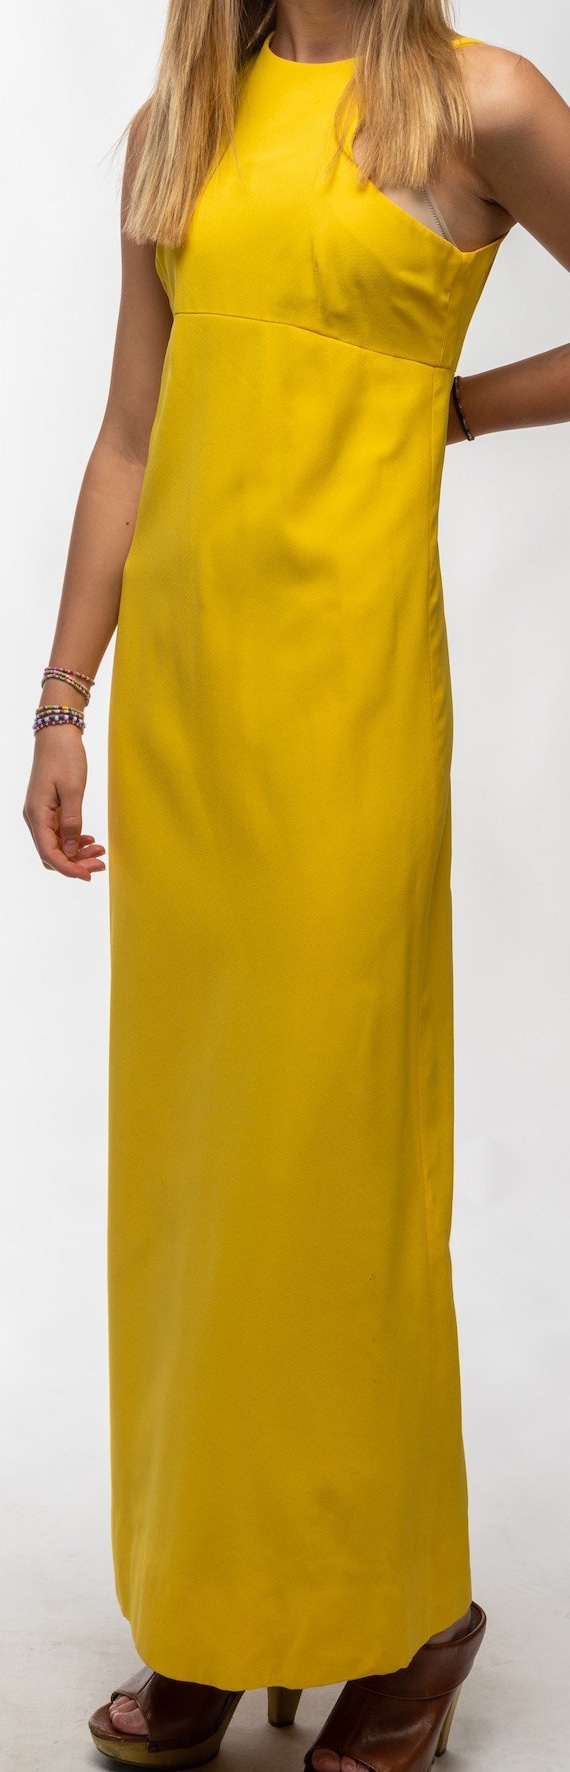 1990s Vintage Yellow Gown - image 10